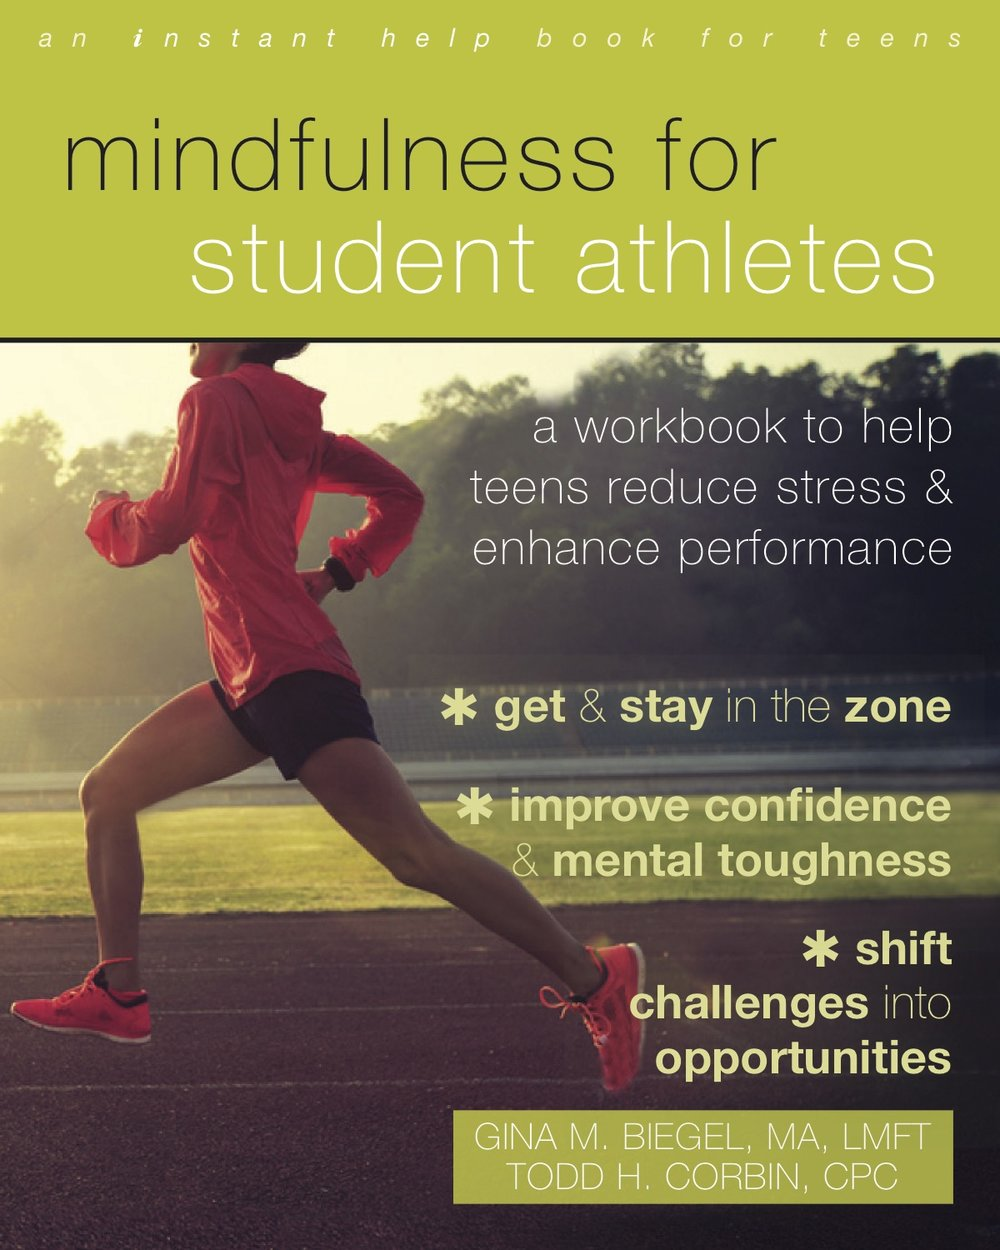 mindfulness for student athletes stressed teens